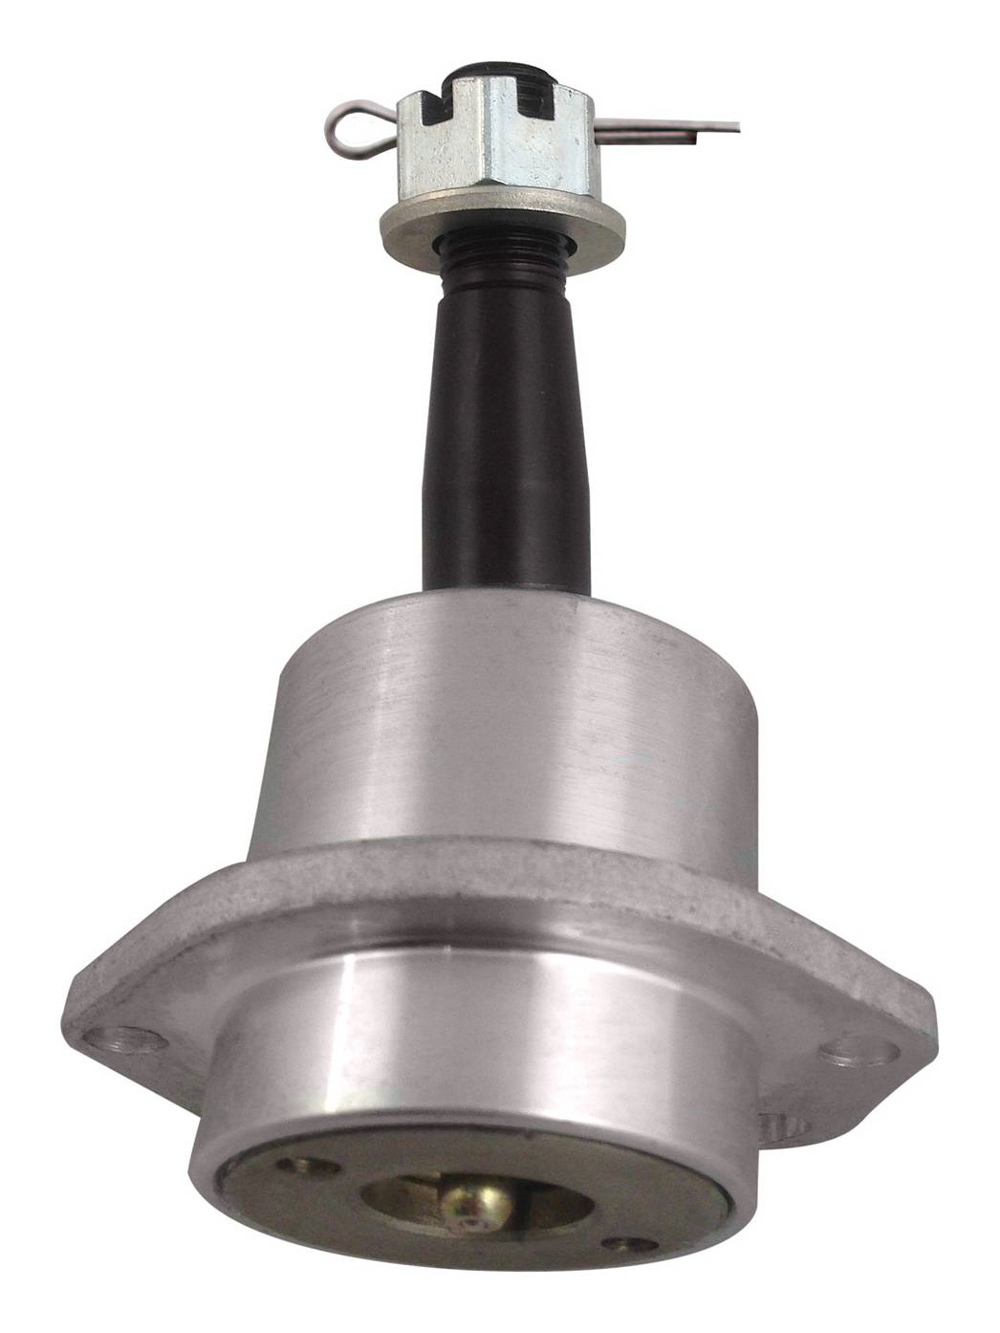 QA1 1210-238B Ball Joint, Greasable, Upper, Bolt-In, 4.542 in Stud, Mustang II / Pinto, Each